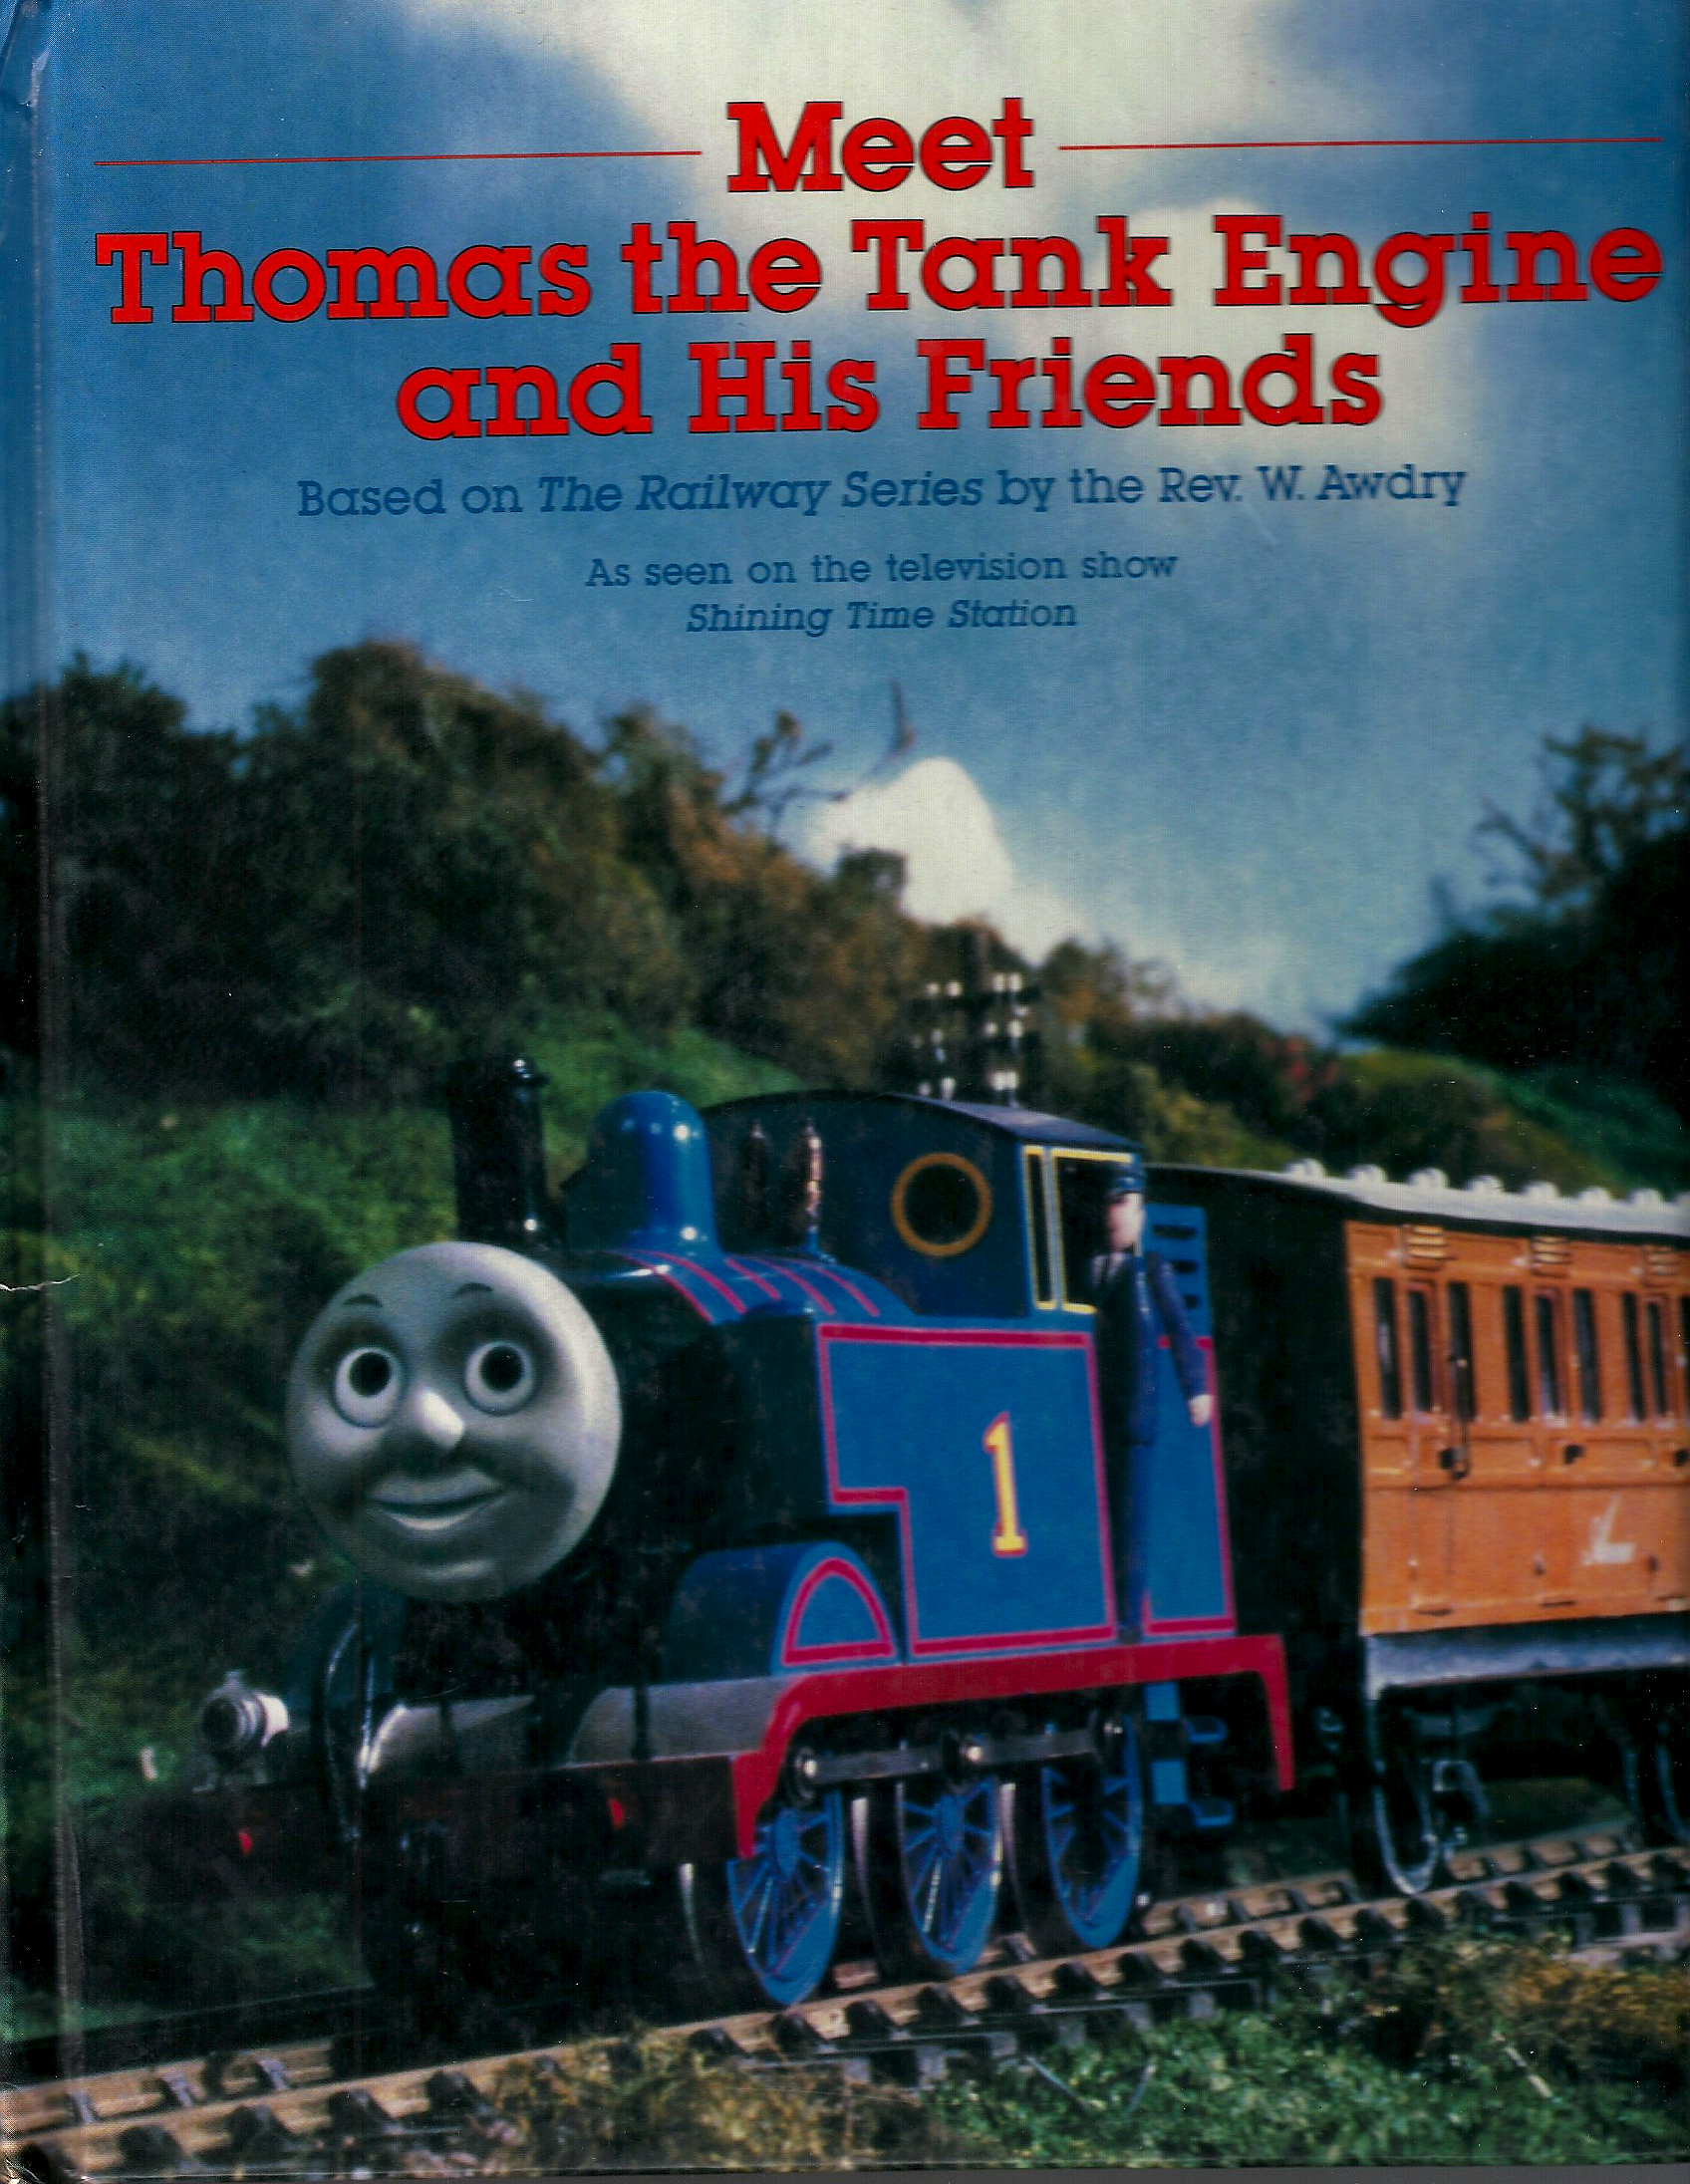 Meet thomas the tank engine and his friends thomas the tank engine meet thomas the tank engine and his friends thomas the tank engine wikia fandom powered by wikia m4hsunfo